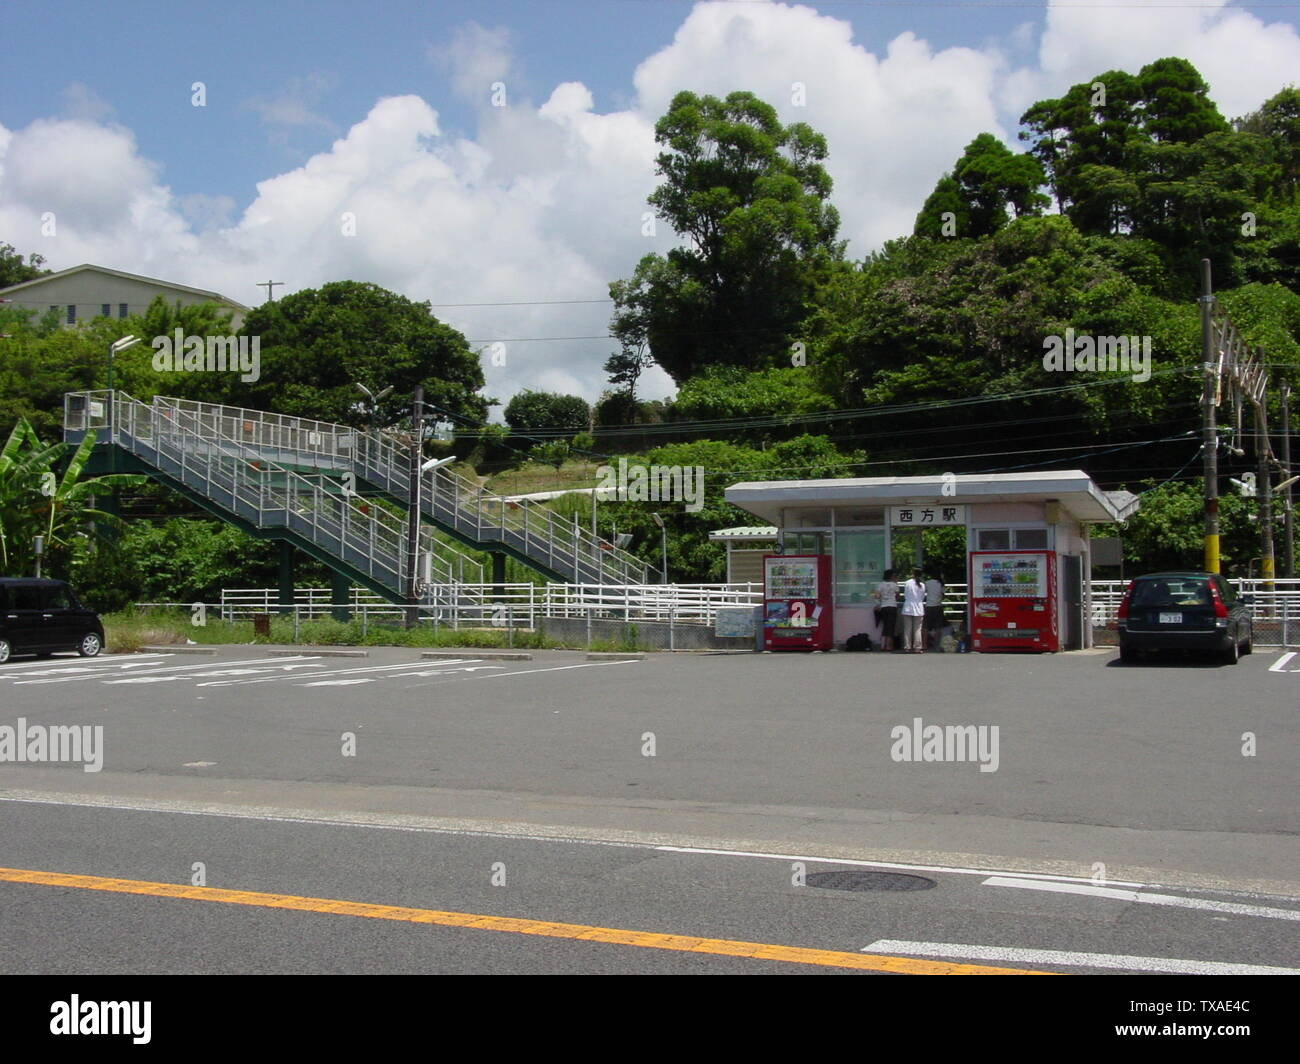 Page 2 Ja F High Resolution Stock Photography And Images Alamy